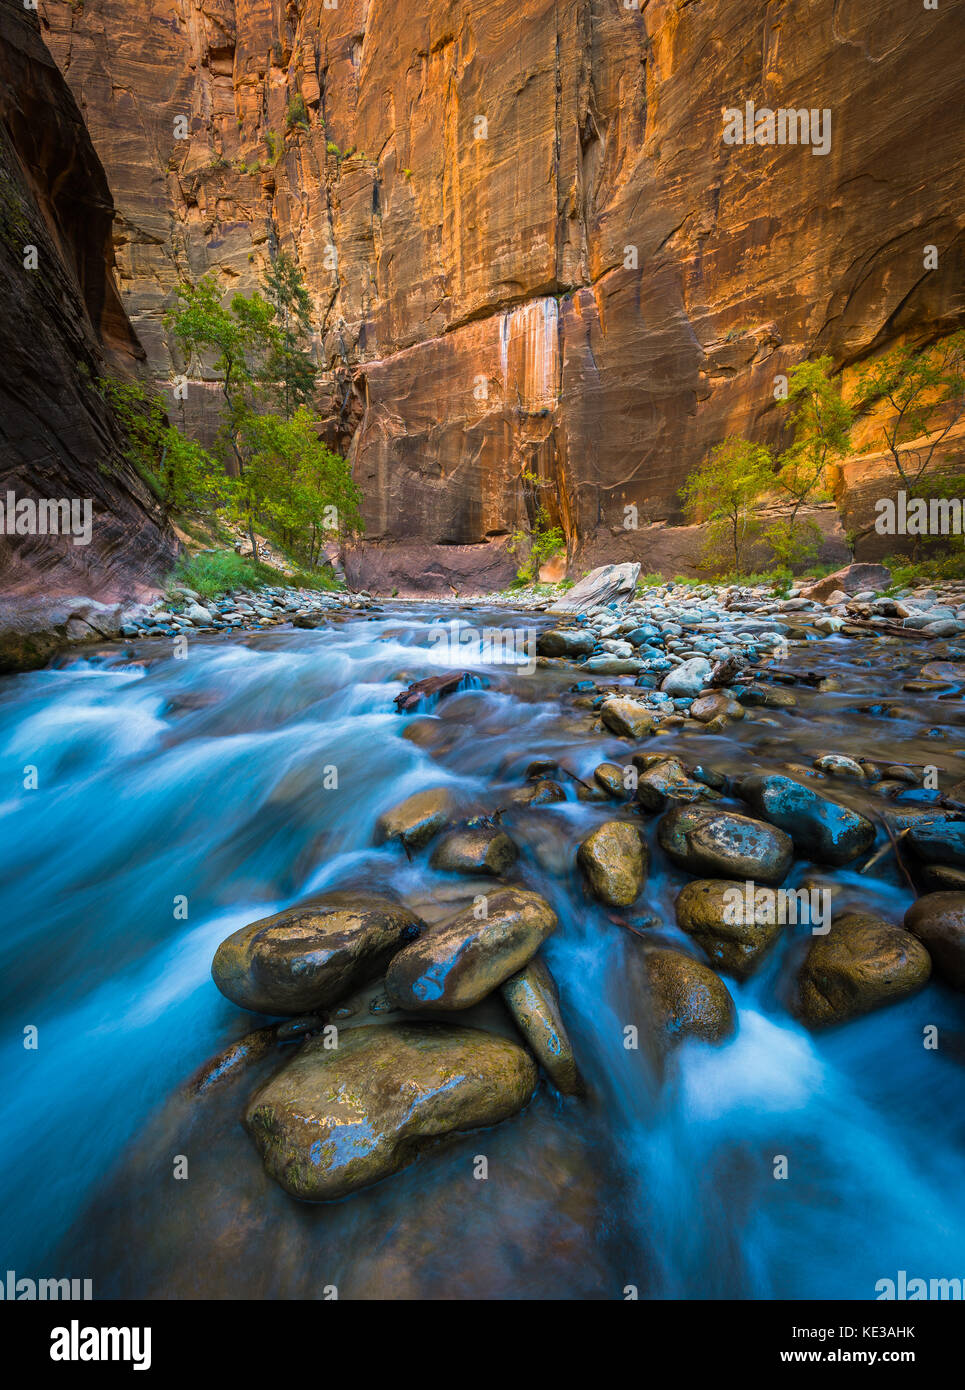 The Narrows in Zion National Park, (near Springdale, Utah) is a section of canyon on the North Fork of the Virgin - Stock Image